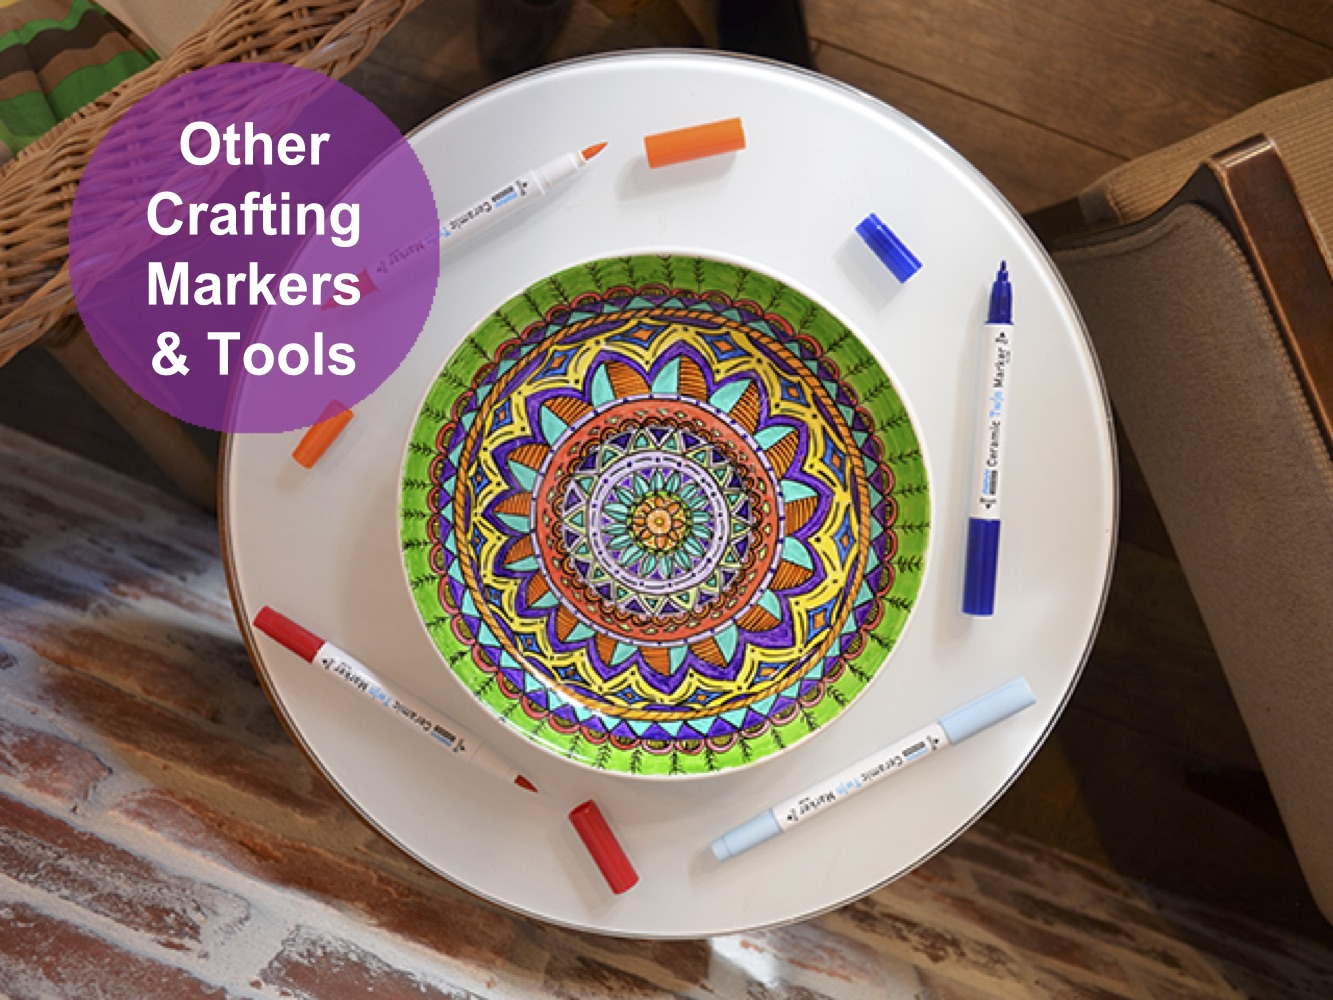 Other Crafting Markers & Tools